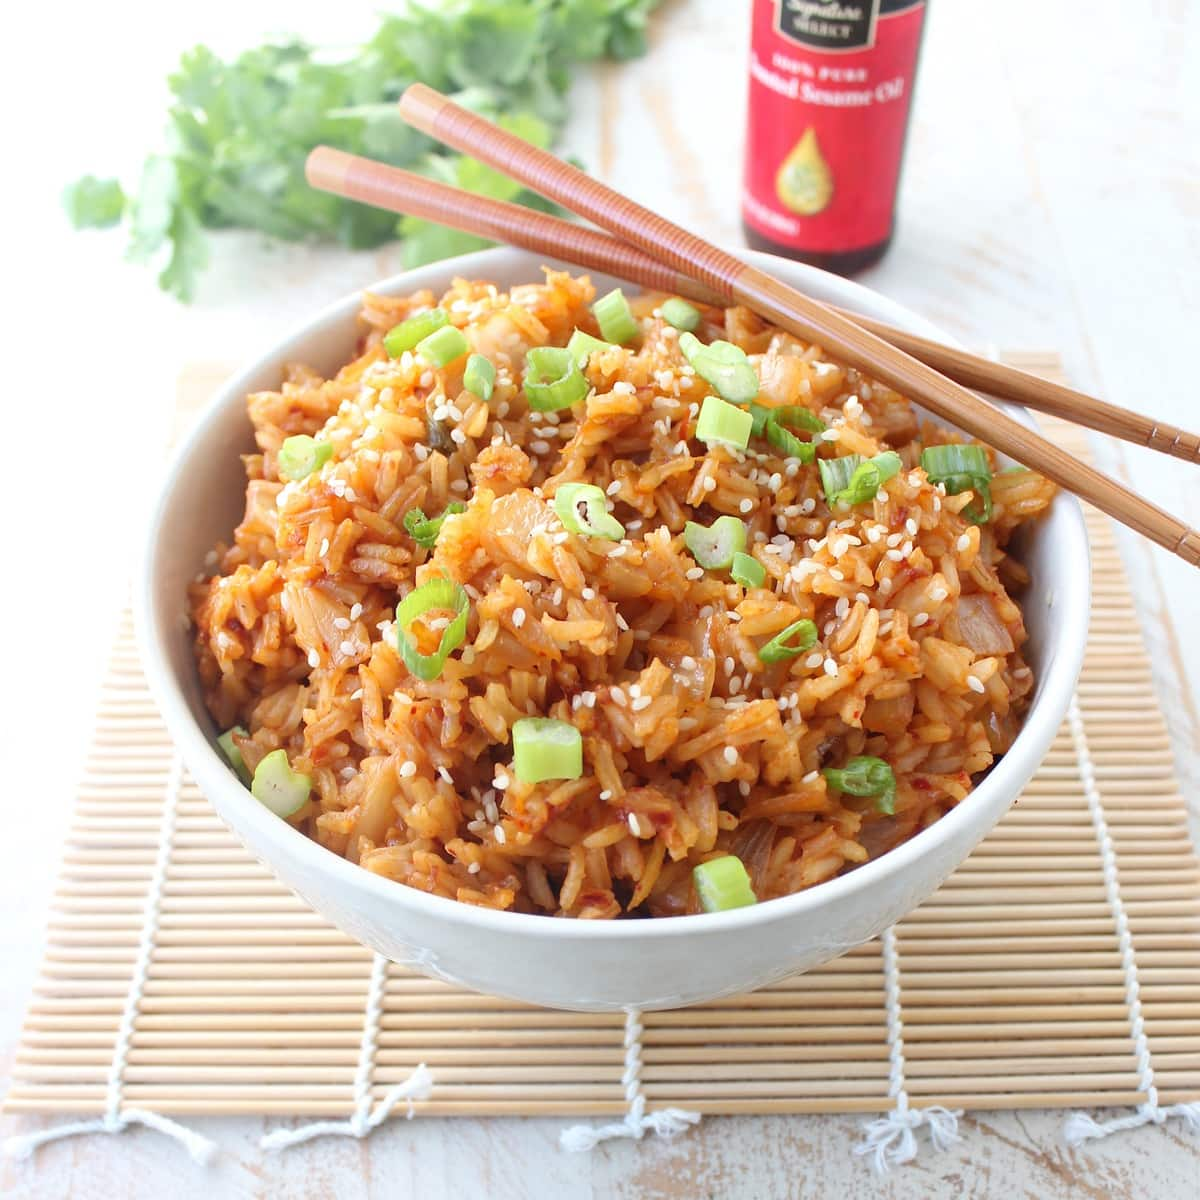 kimchi fried rice I use kimchi as a topper on this meat served over rice ( omg), chopped up in kimchi fried rice, andchopped up in kimchi fried rice over and over and over again we are obsessed with this easy gluten-free dinner recipe this recipe concept came to me a few years ago by way of the new york timeswhat can i say, if the nyt tells me to cook something, i usually do it.